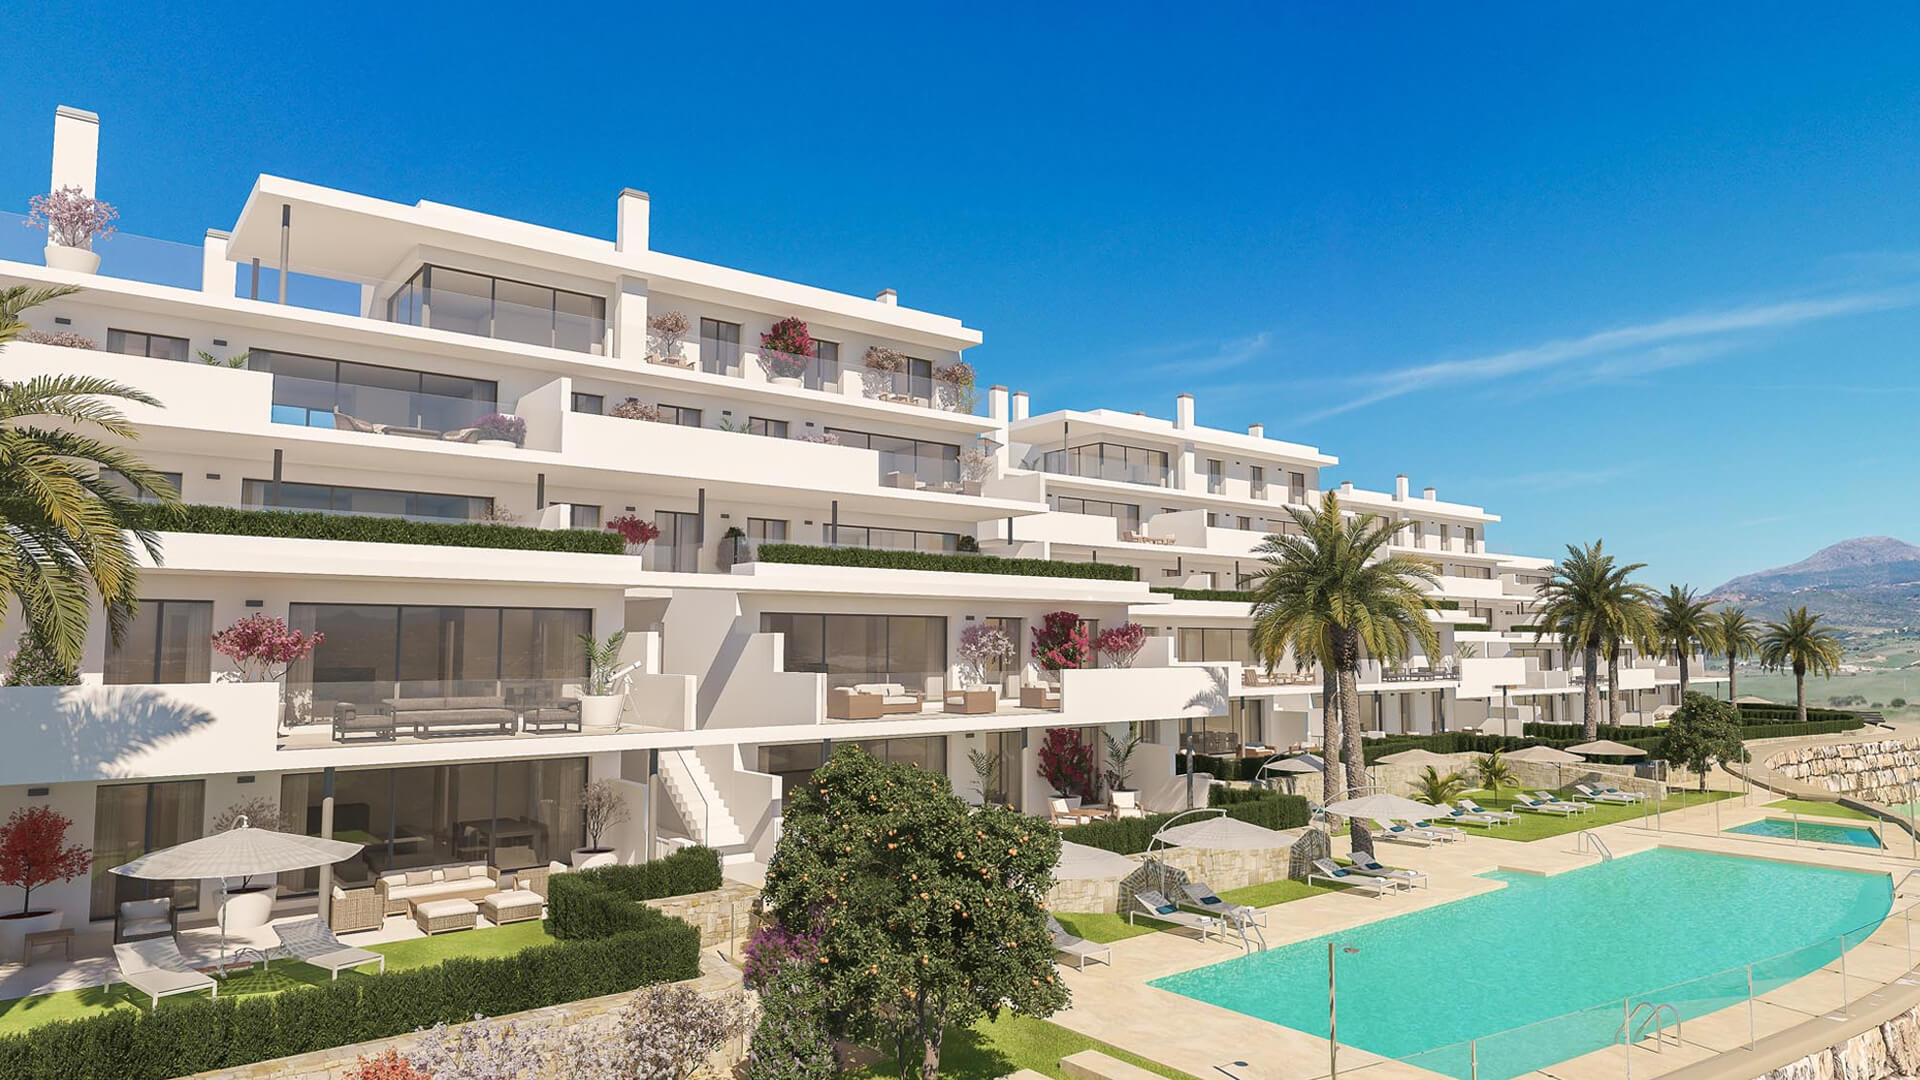 New Property For Sale in Marbella, Off Plan